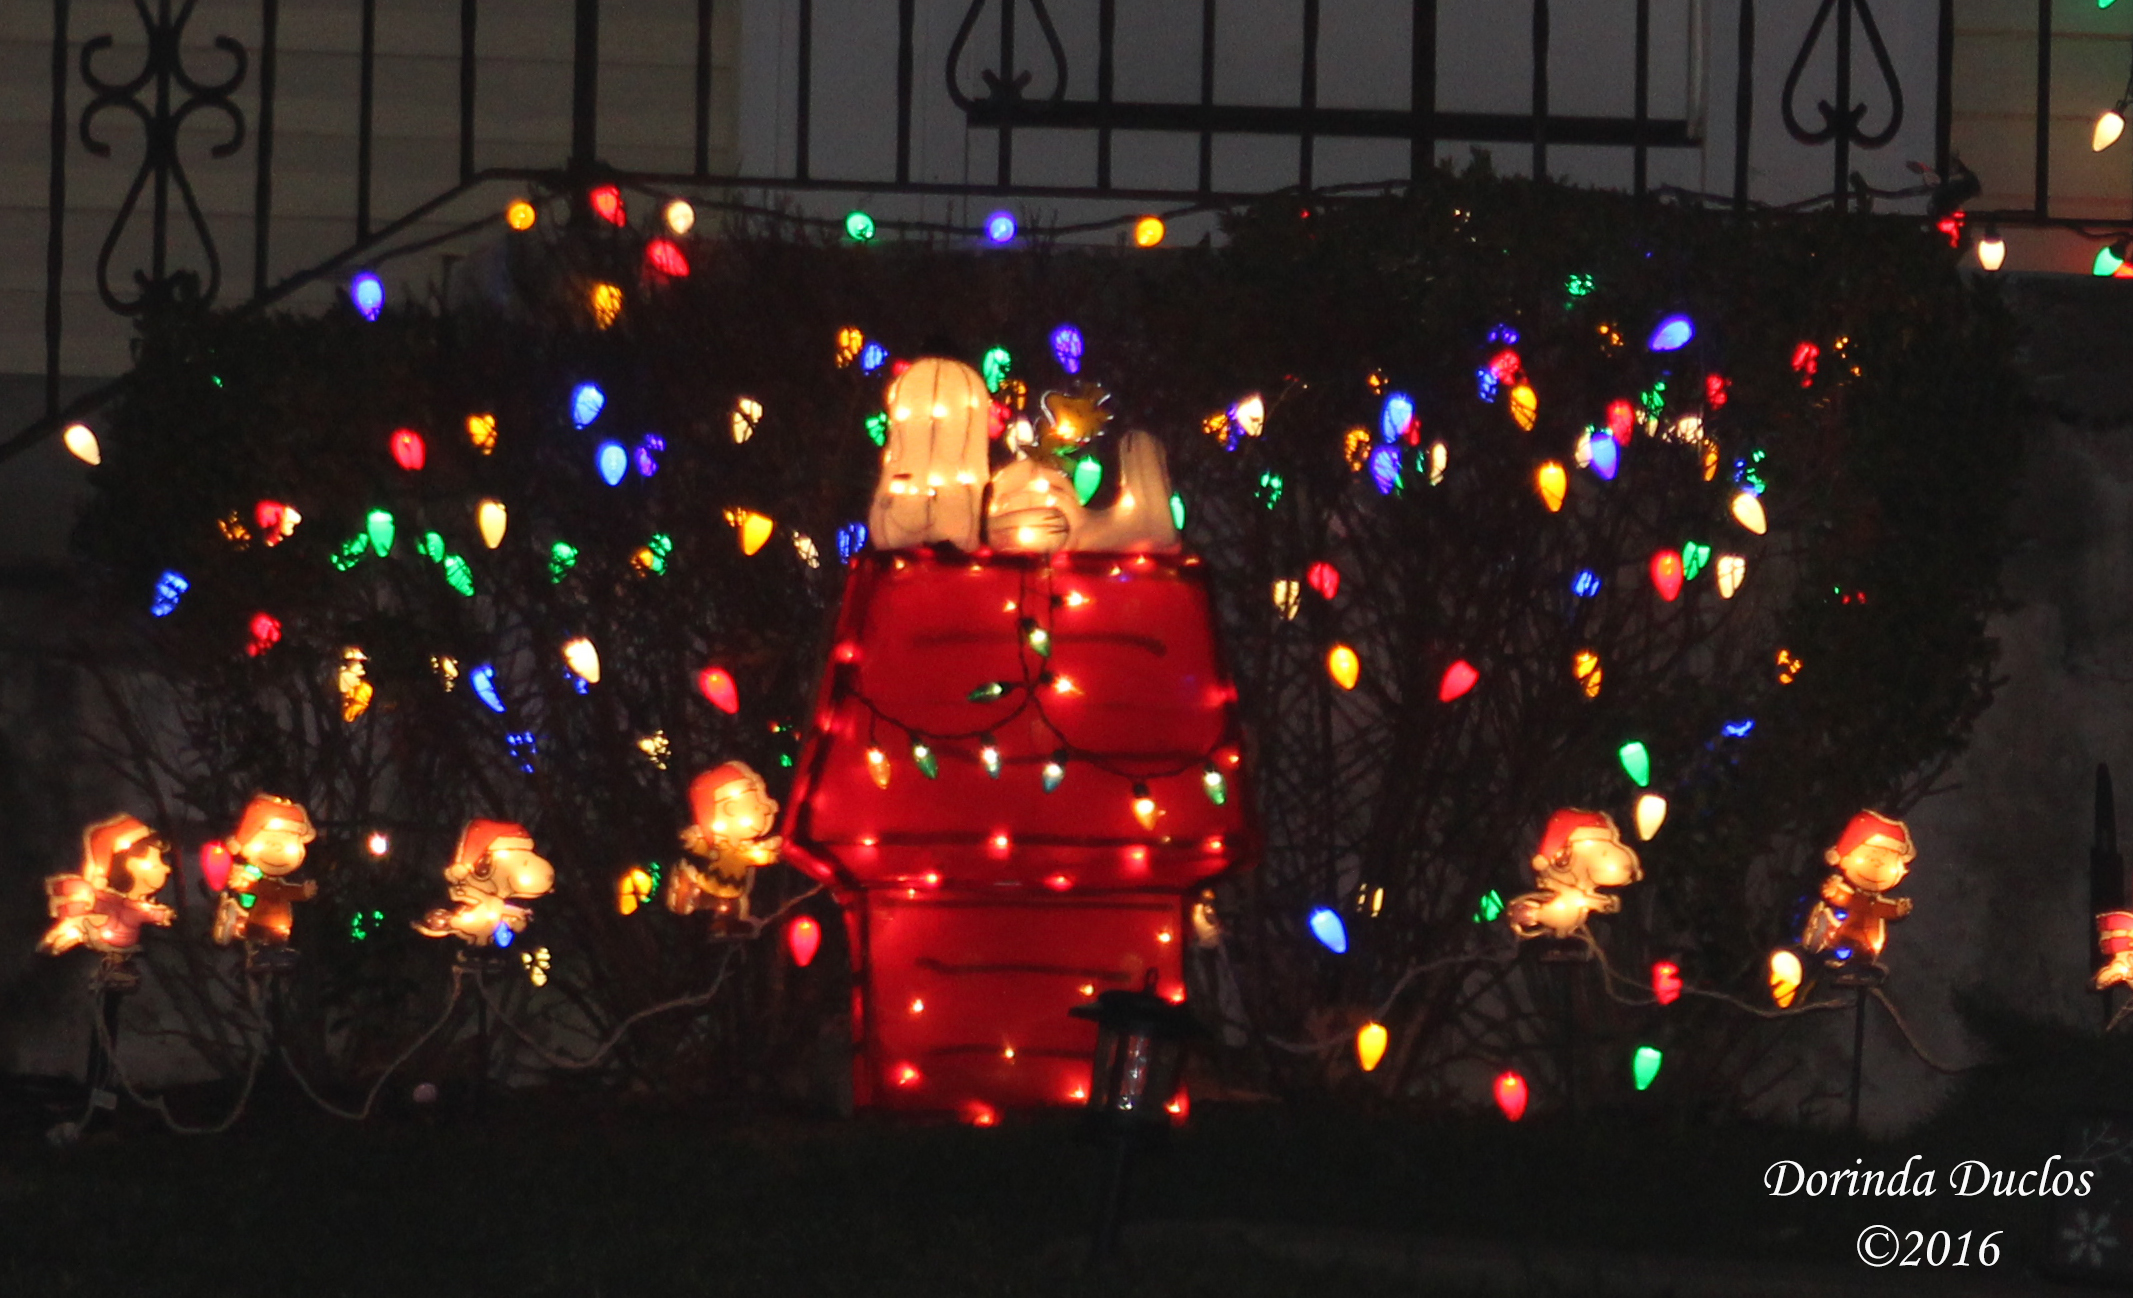 the snoopy gang is out in full force this year the last photo is our beloved snoopy as the red baron atop his sopwith camel - Snoopy Christmas Lights